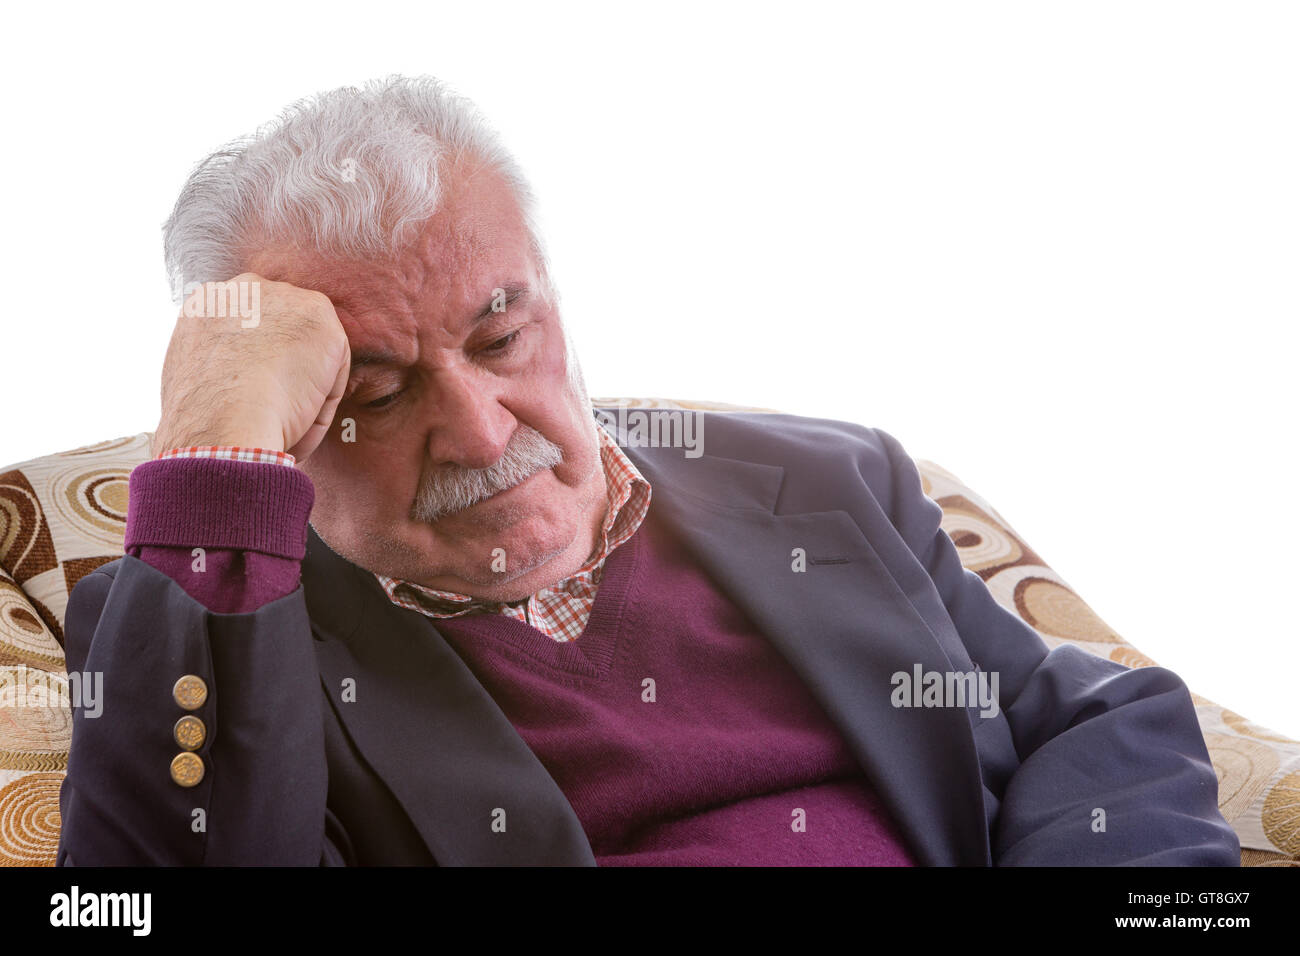 Tired elderly retired gentleman sitting thinking in a comfortable armchair resting his head on his hand with his - Stock Image